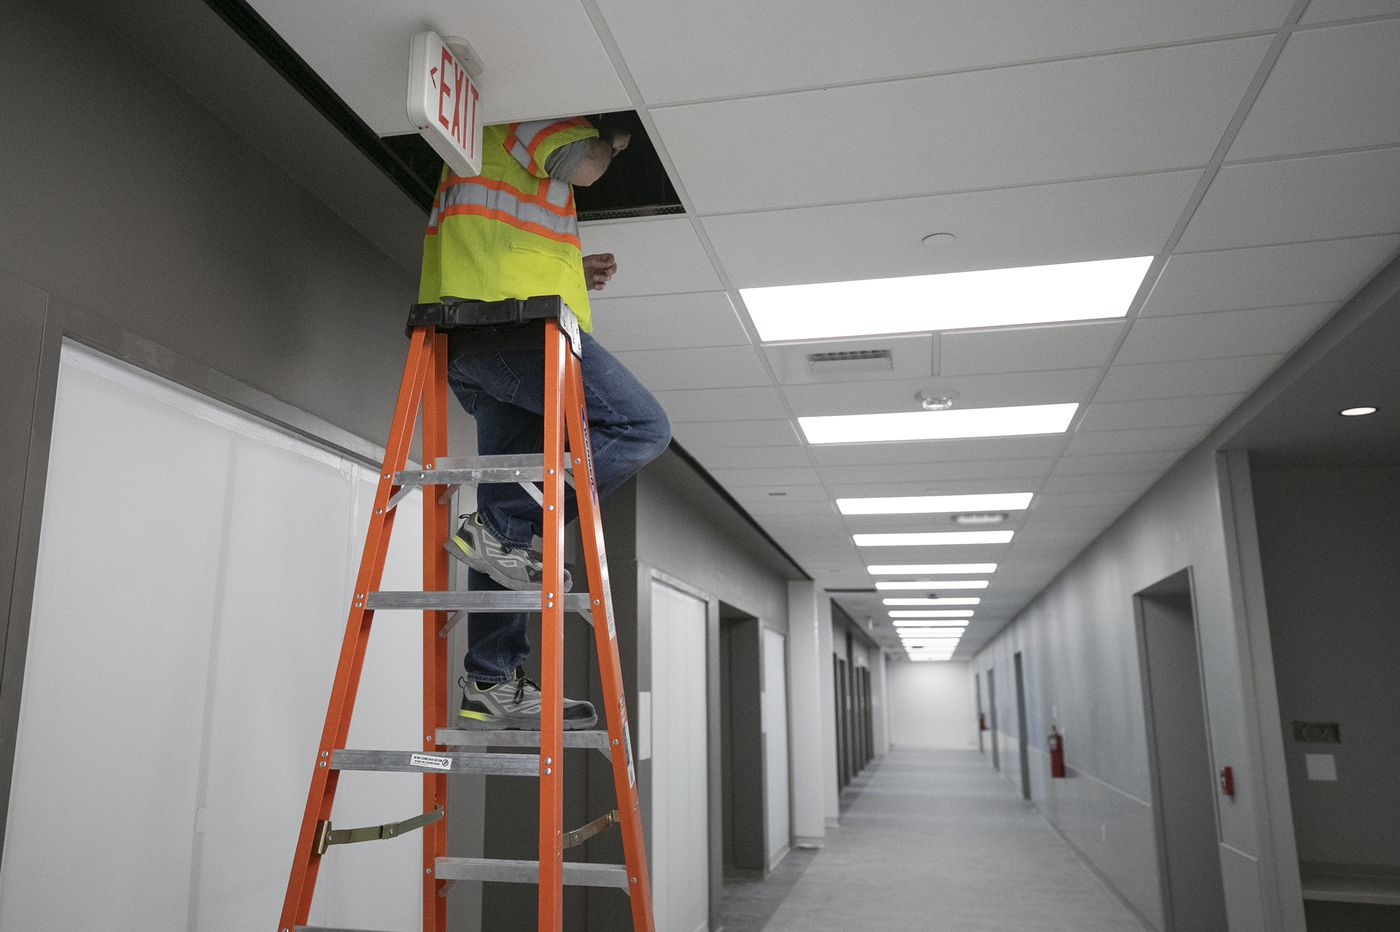 Construction workers, hit hard by the coronavirus, need support | Opinion